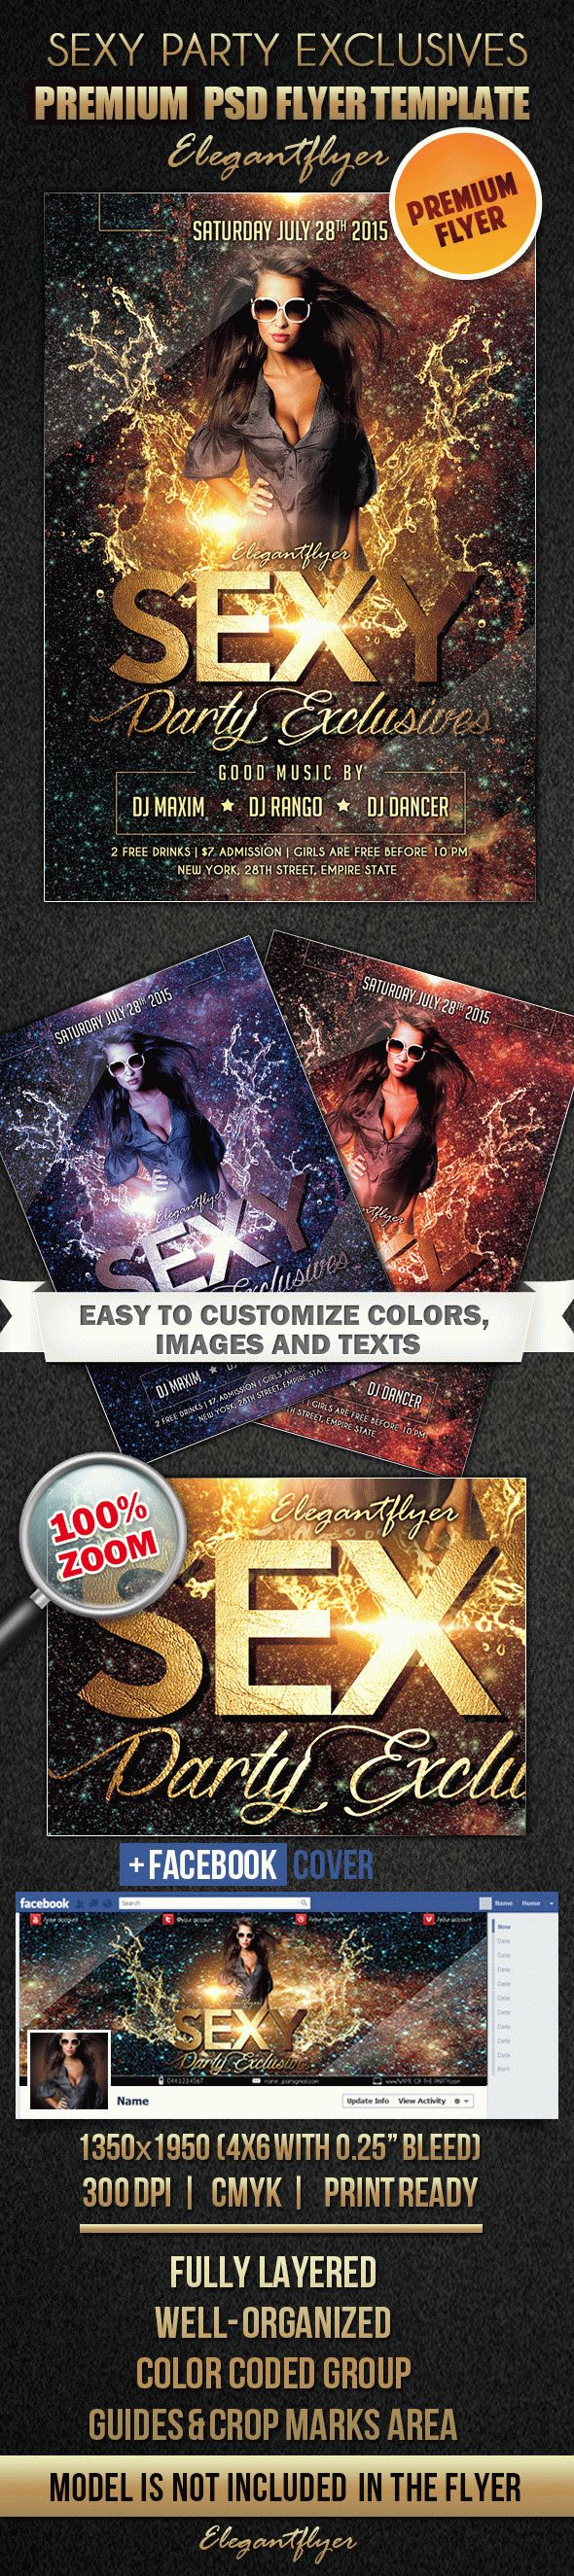 Sexy Party Exclusives – Flyer PSD Template + Facebook Cover